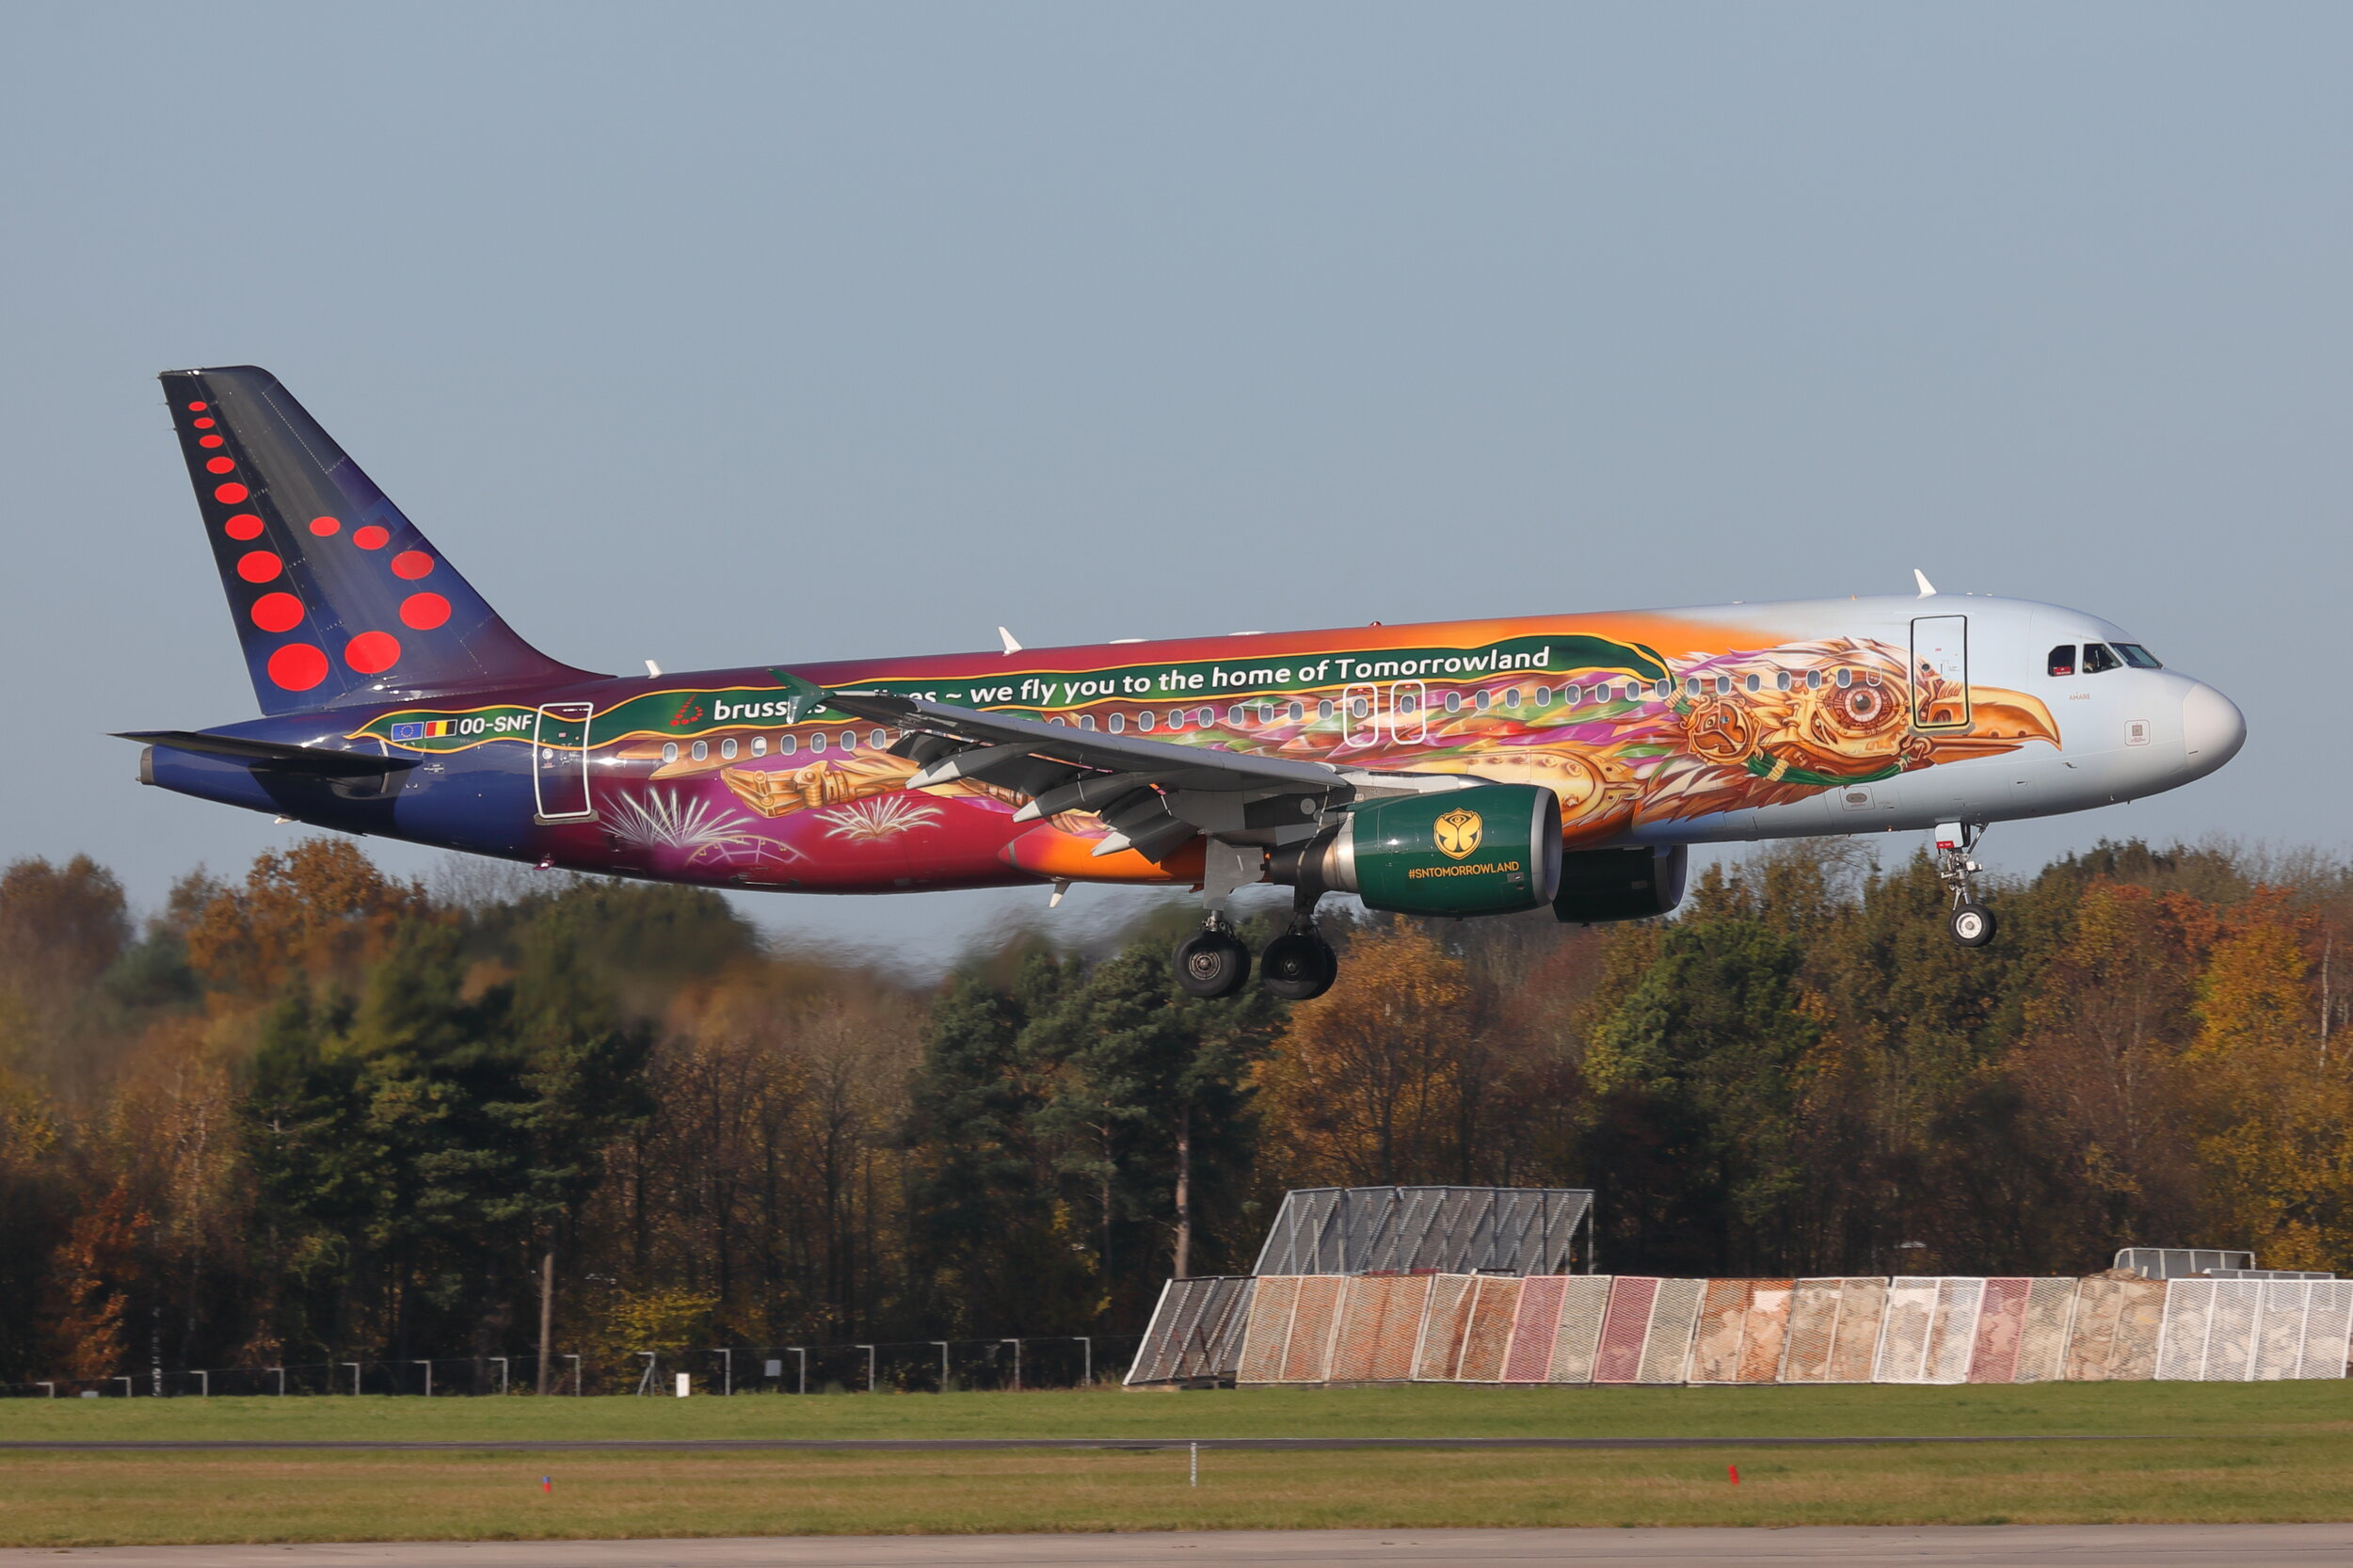 "The Brussels Airlines Special Liveries don't tend to be regular visitors to Manchester and are not the easiest of aircraft to photograph.However, Steve Ashworth captured the ""Tomorrowland"" A320 OO-SNF very nicely on 8th November with the Autumn foliage providing the perfect backdrop!"